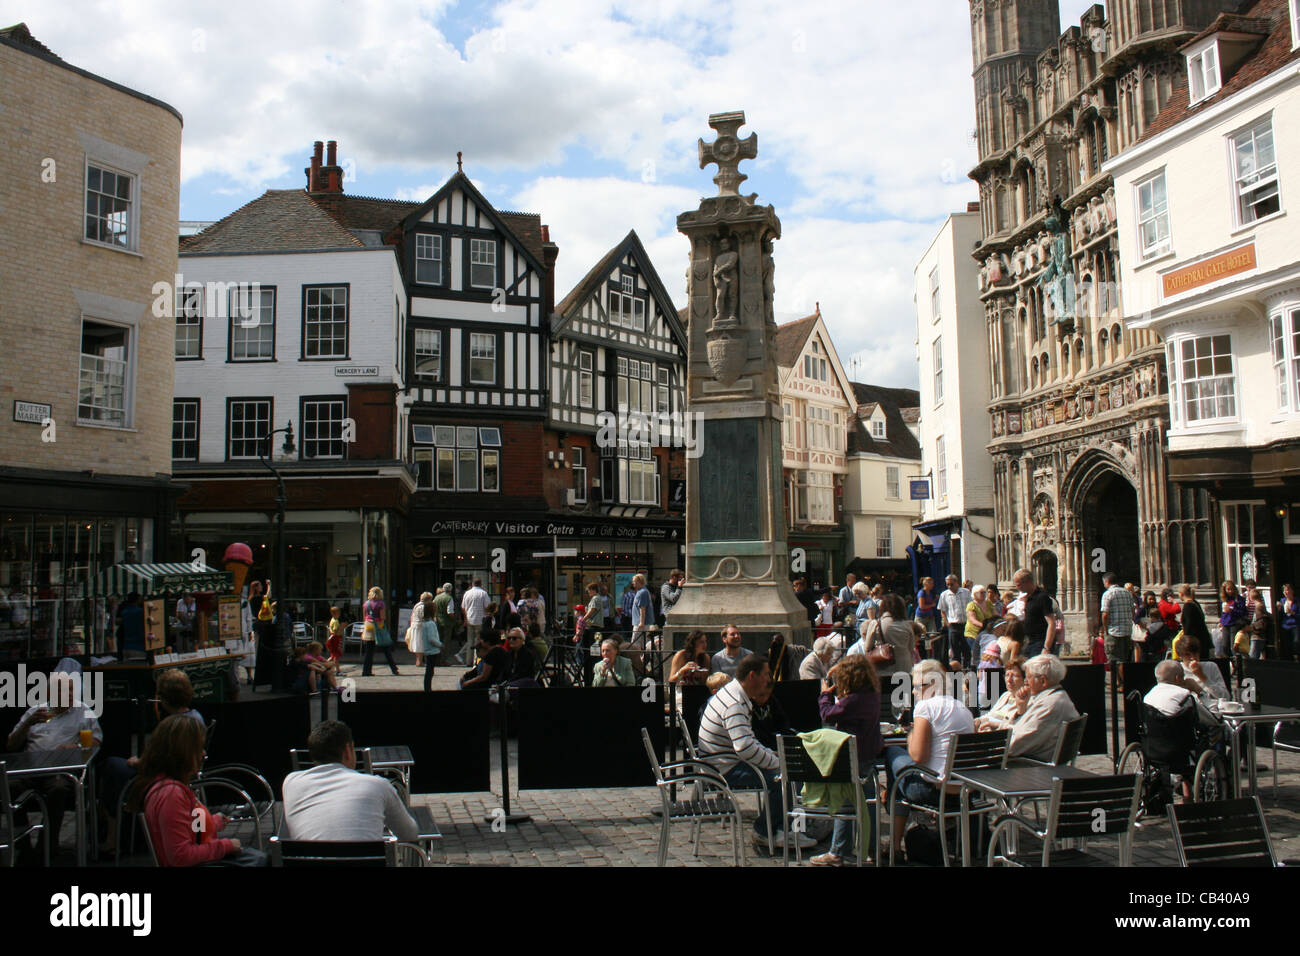 Open Air Coffee Bar in town centre - Stock Image